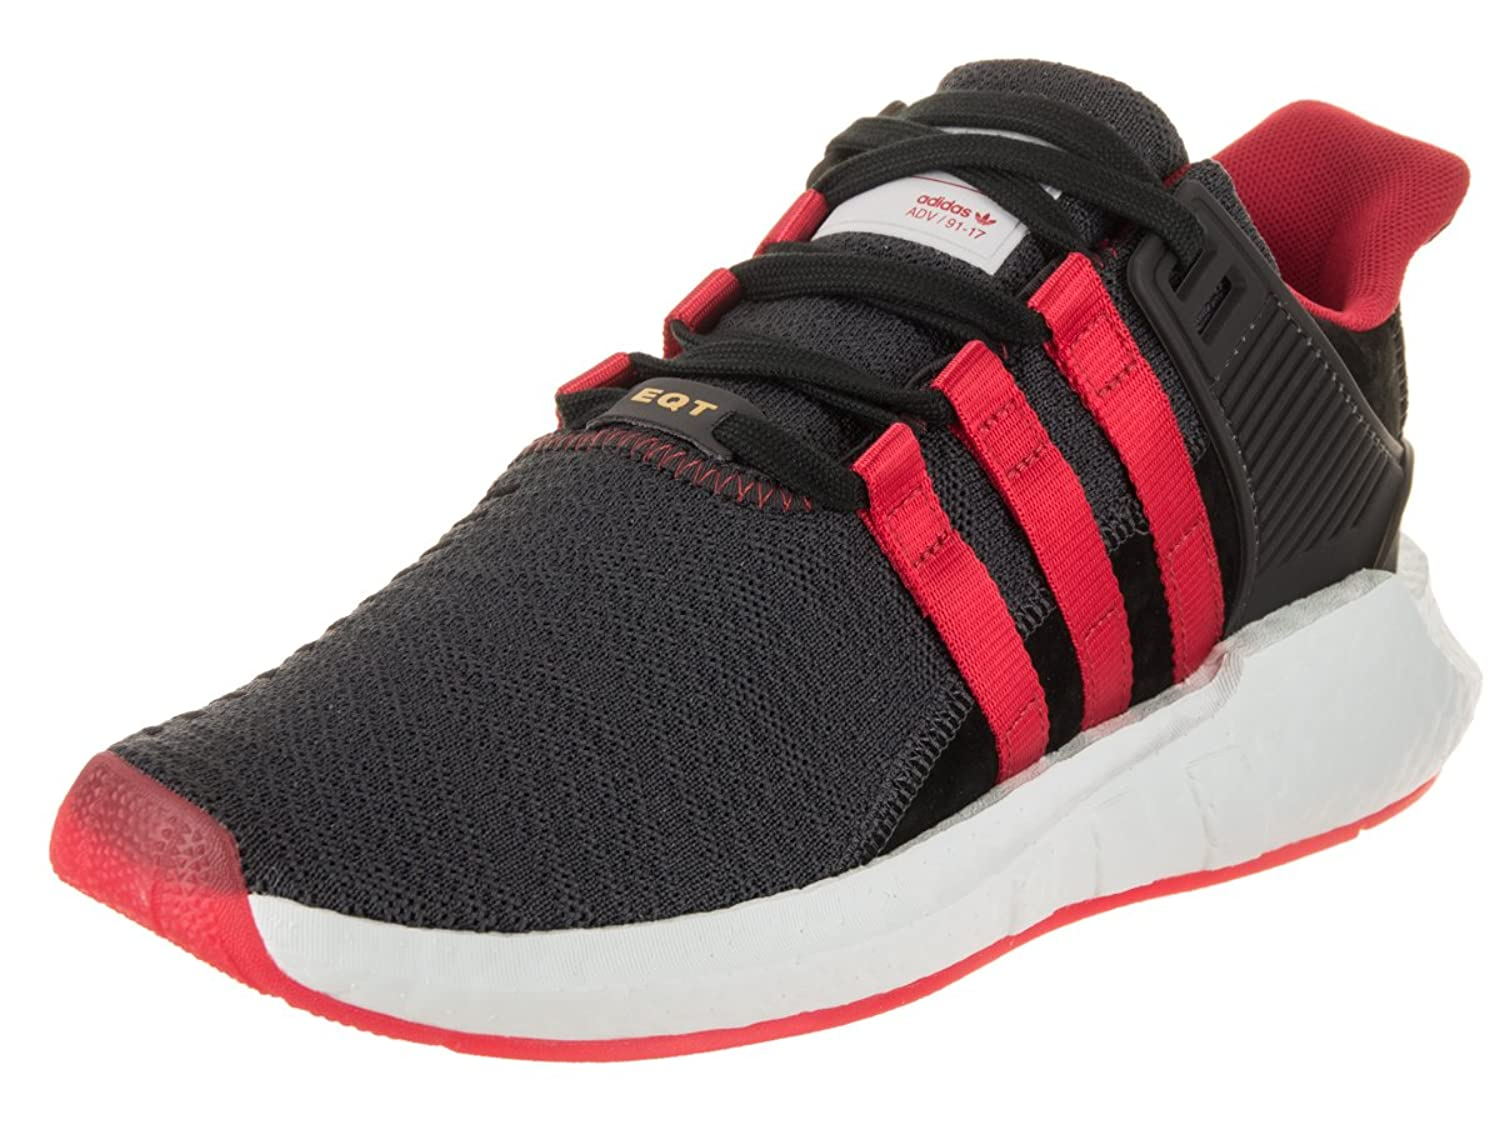 Adidas EQT Support 9317 (Yuanxiao) db2571